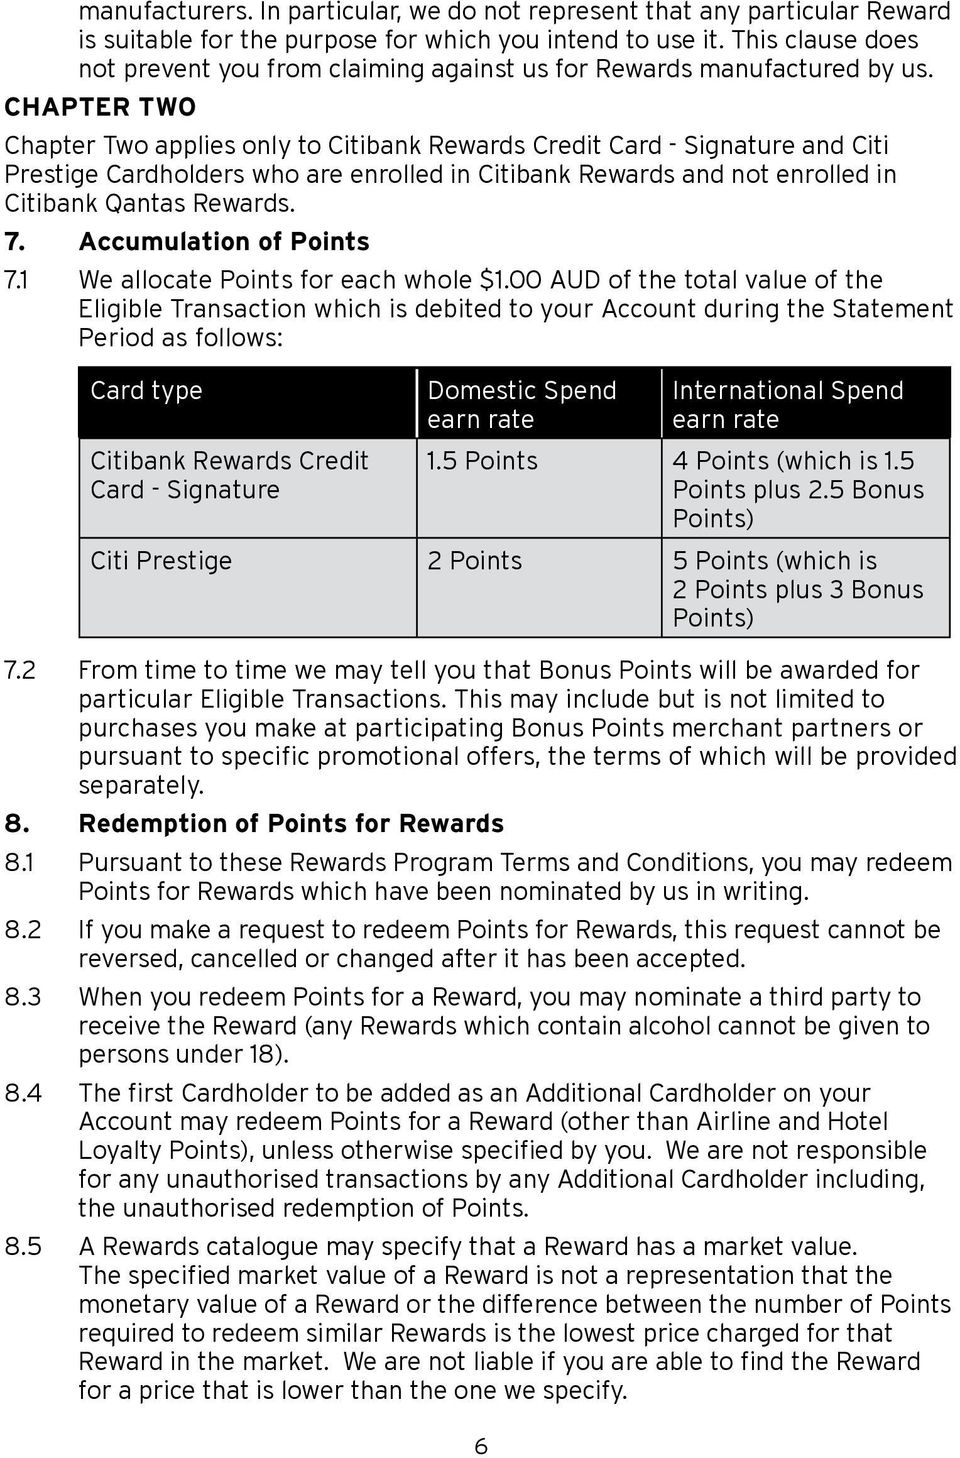 CHAPTER TWO Chapter Two applies only to Citibank Rewards Credit Card - Signature and Citi Prestige Cardholders who are enrolled in Citibank Rewards and not enrolled in Citibank Qantas Rewards. 7.